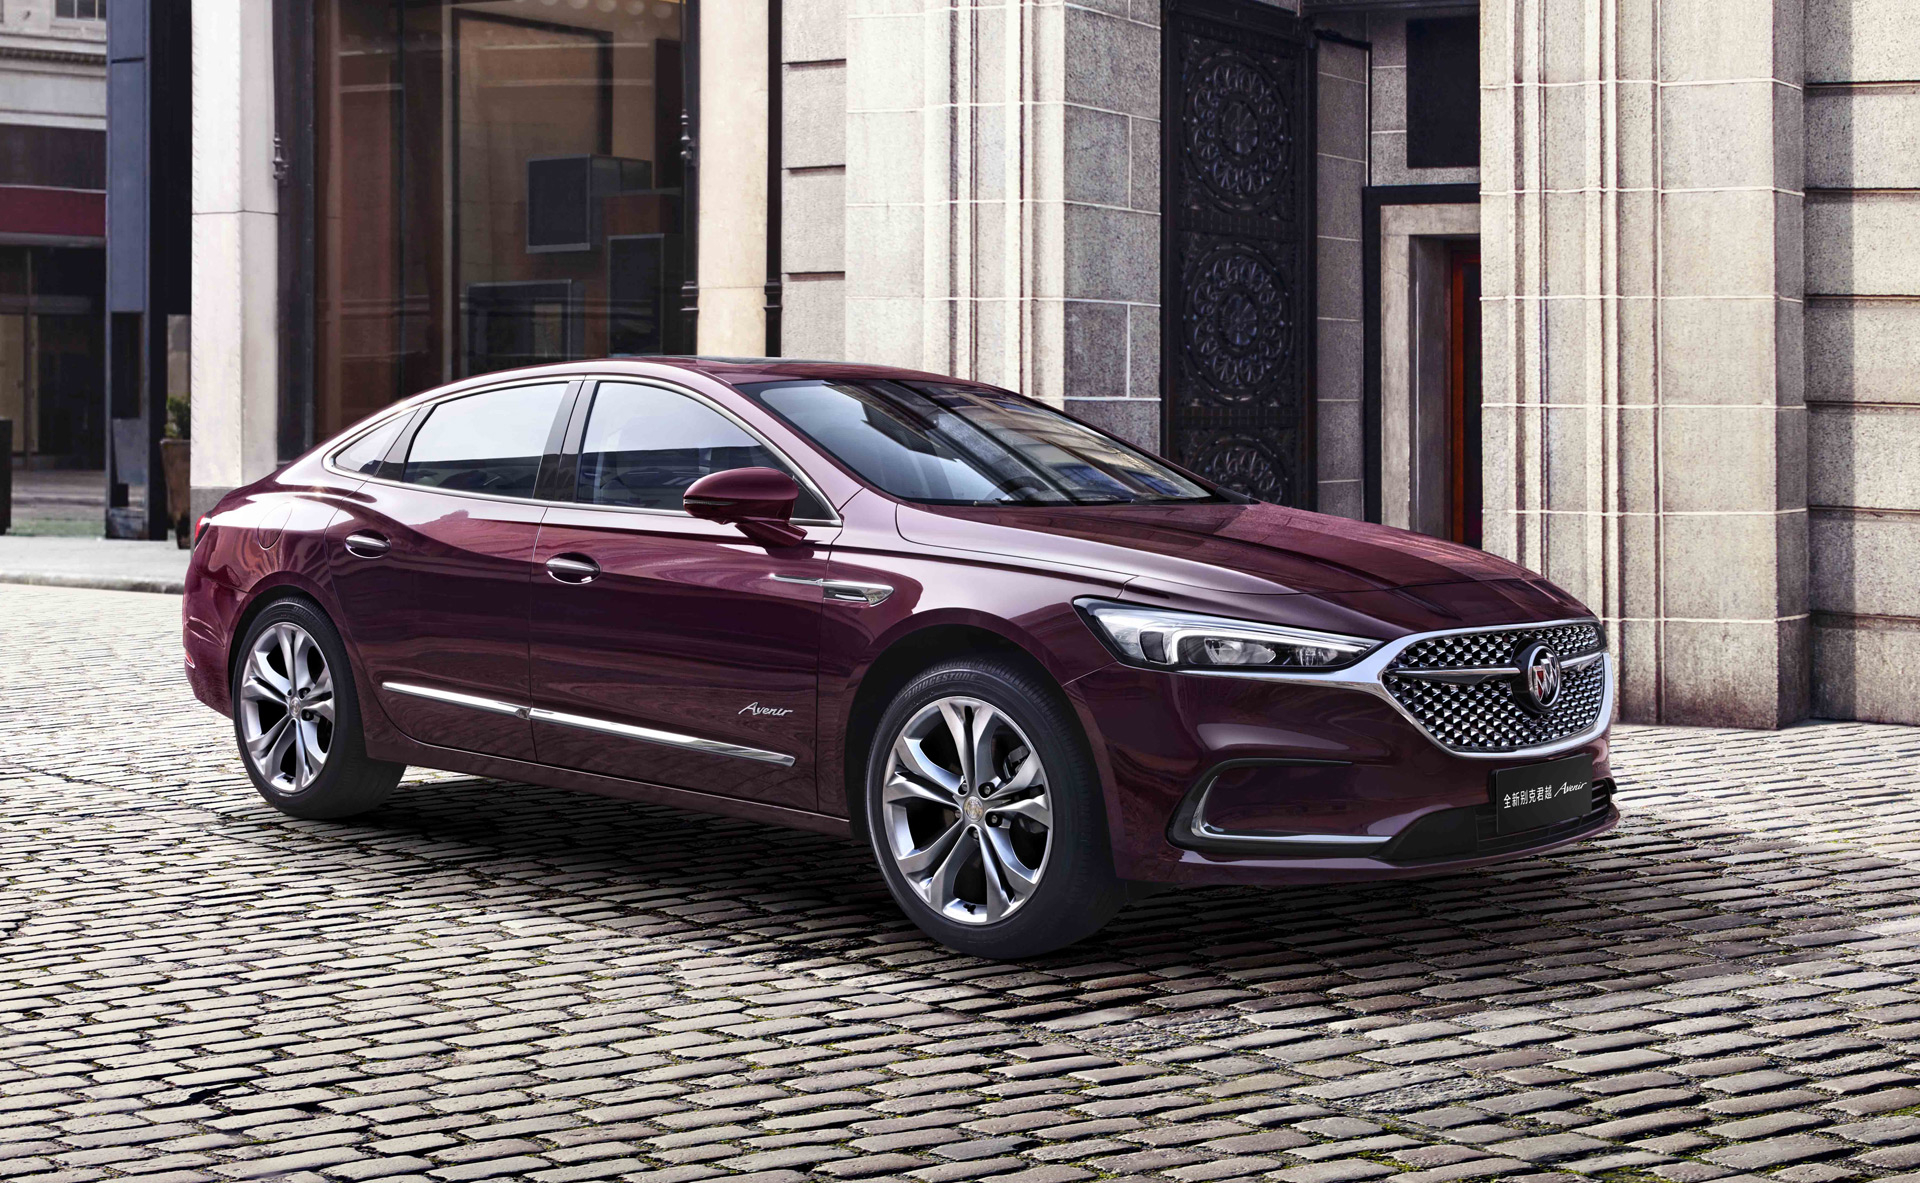 2020 Buick Lacrosse Made Handsome Just As It's Dropped In Us New 2021 Buick Lacrosse Price, Interior, Specs